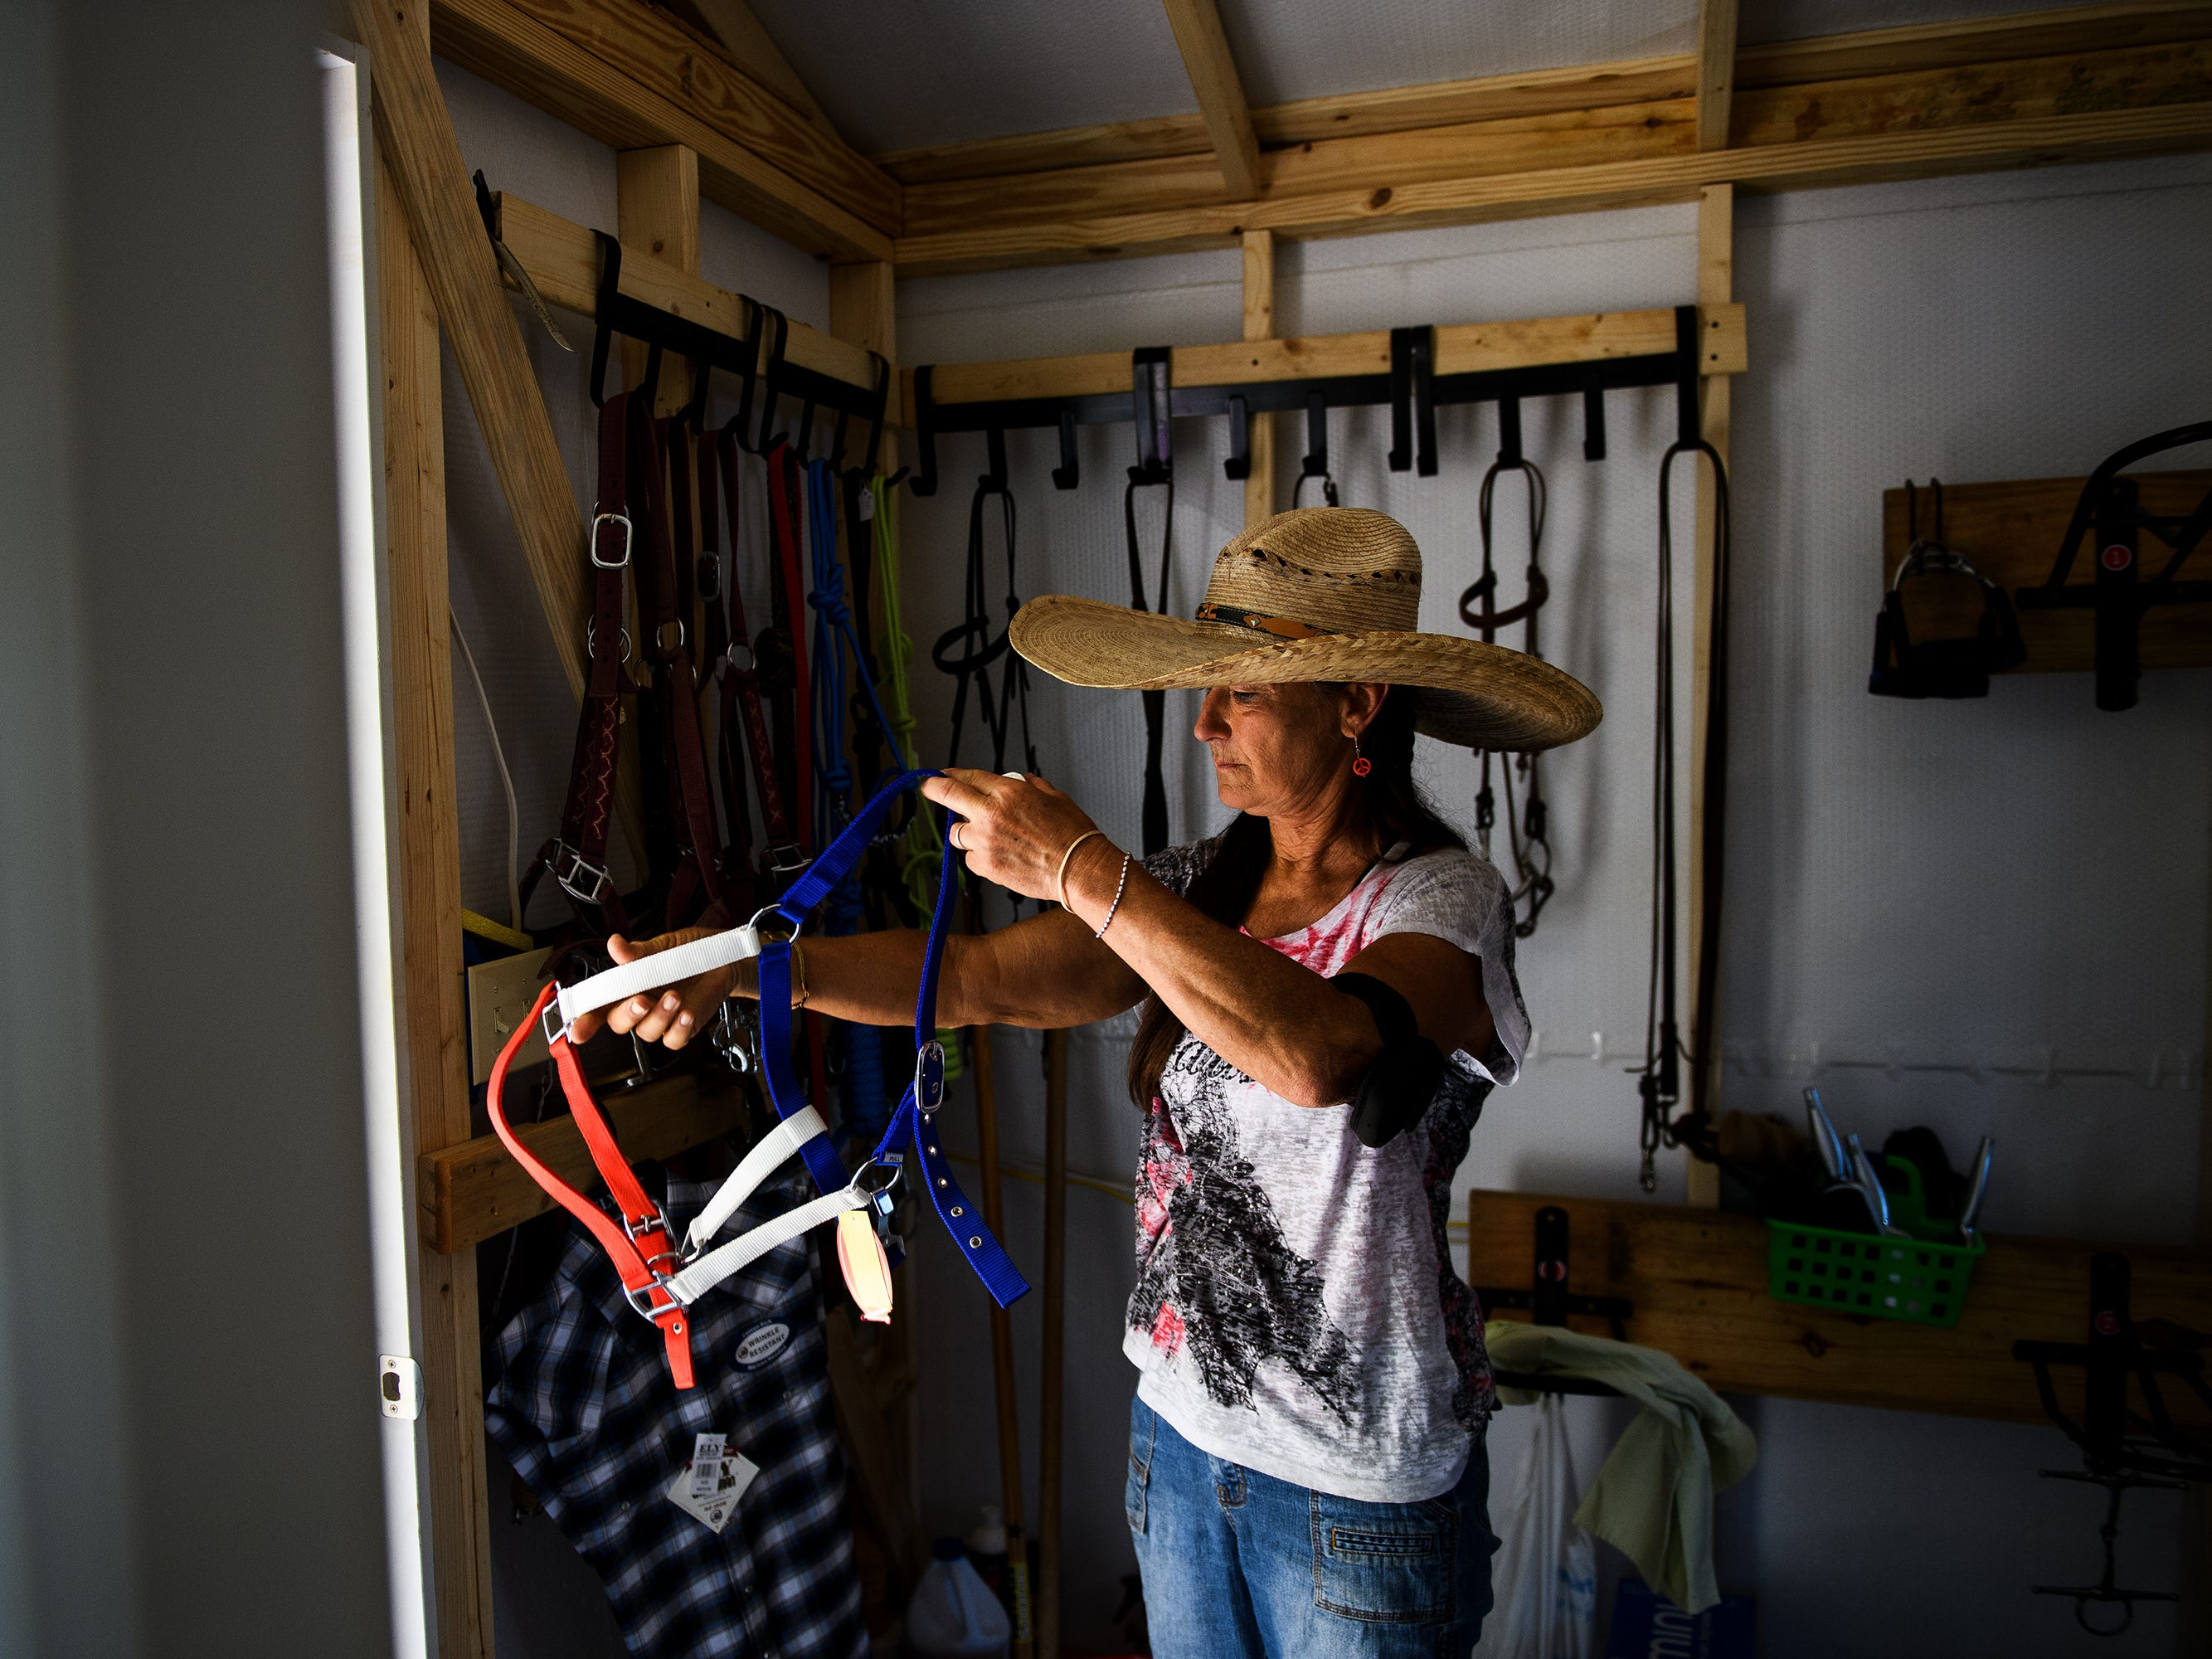 Lisa Hartman inspects a harness in the storage shed at J Rest Farm Tuesday, April 30, 2019.